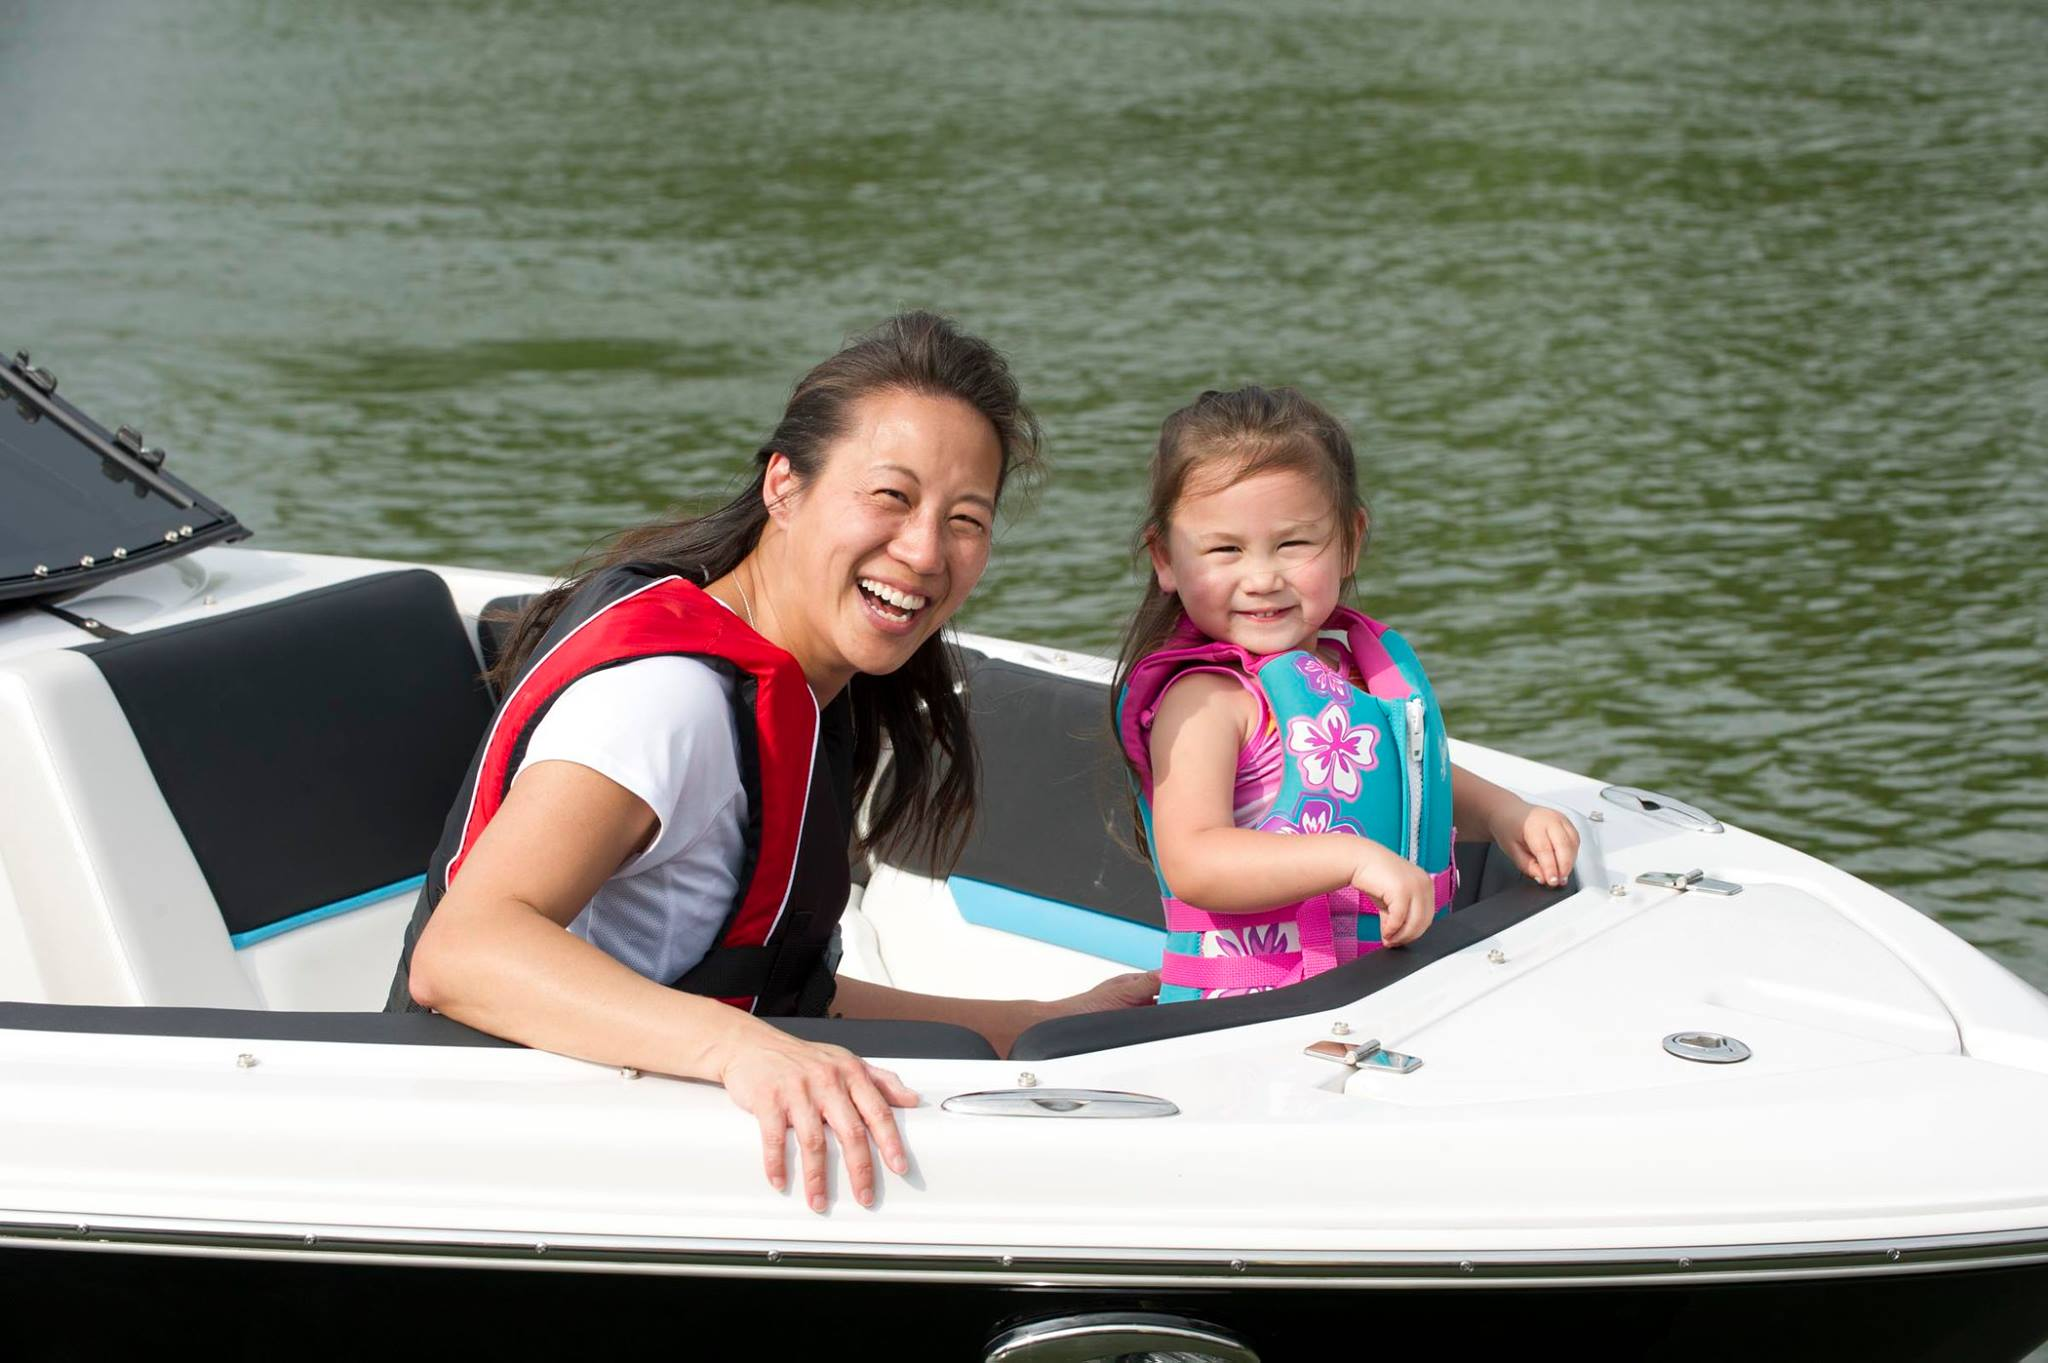 Everyone on your boat should wear a life jacket.